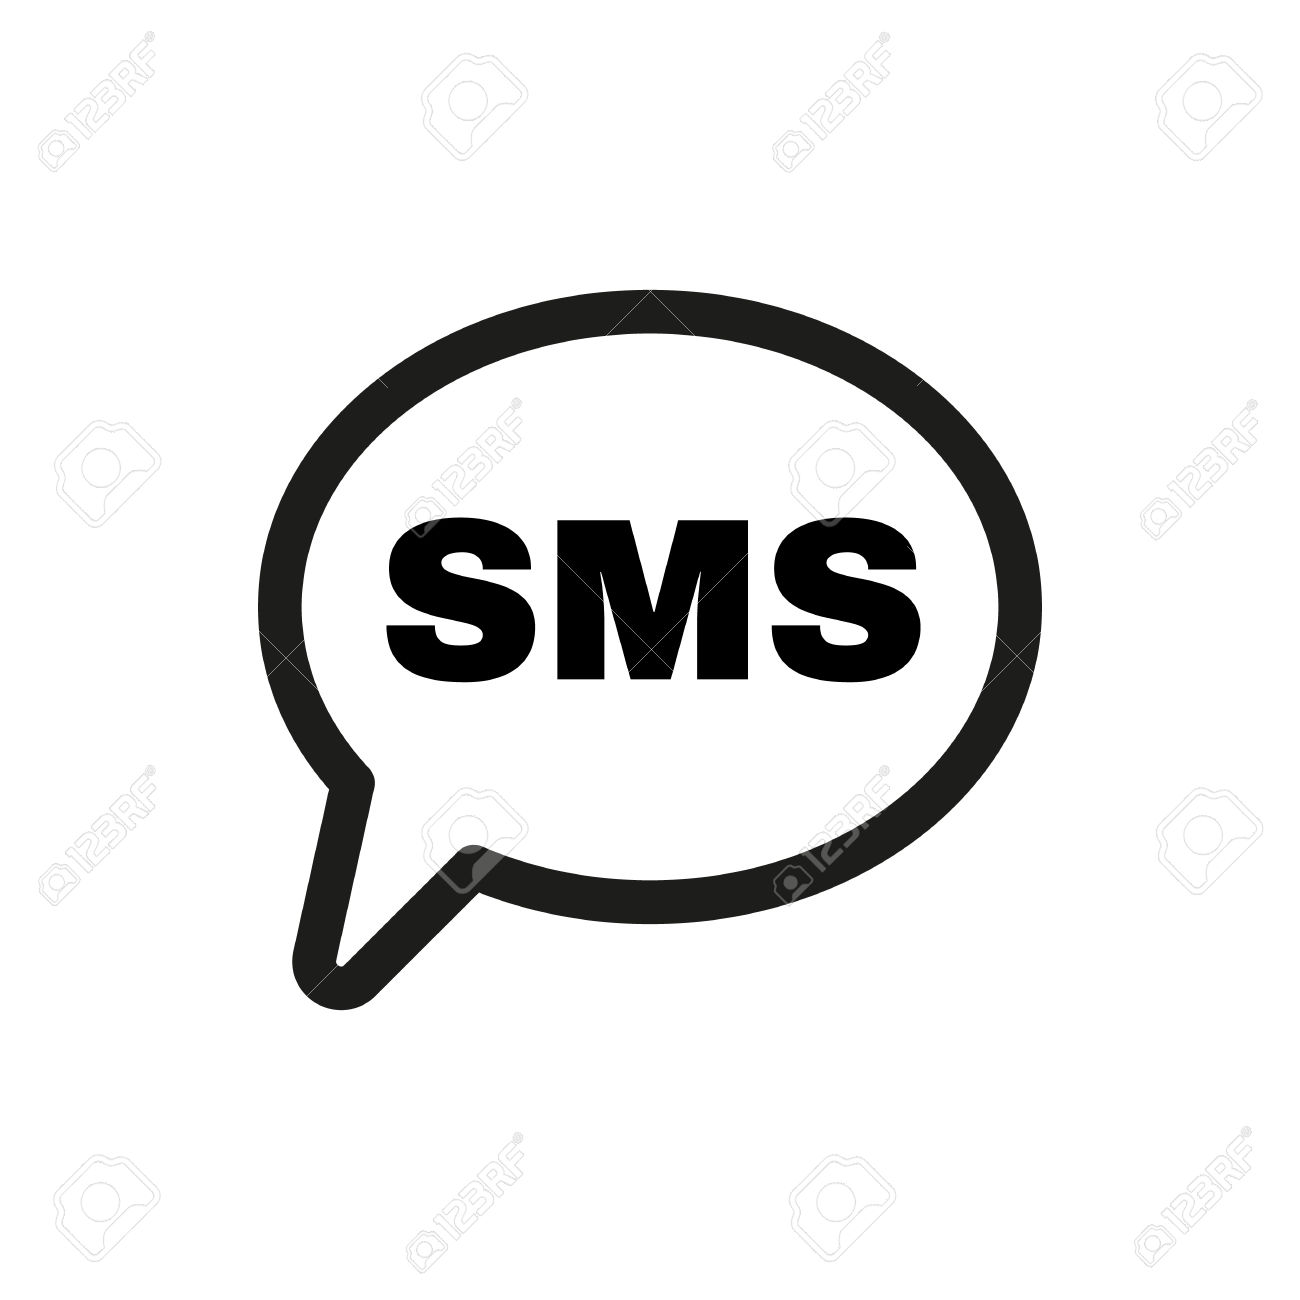 Text message icon clipart svg freeuse The Sms Icon. Text Message Symbol. Flat Vector Illustration ... svg freeuse